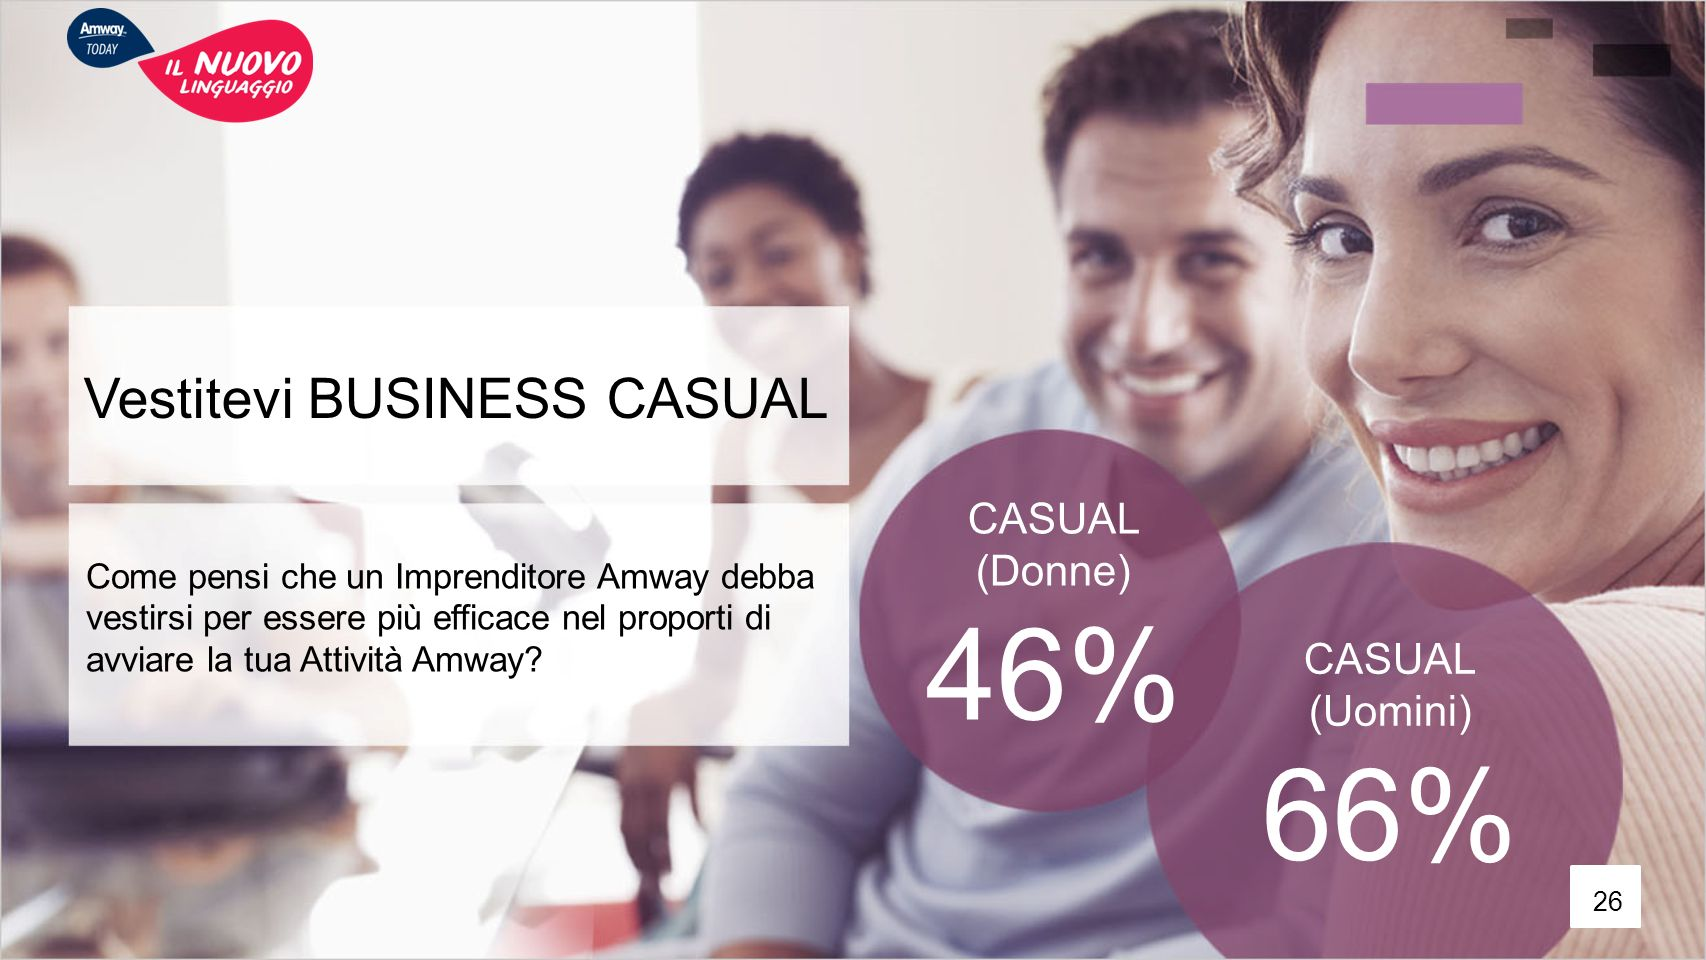 46% 66% Vestitevi BUSINESS CASUAL CASUAL (Donne) CASUAL (Uomini)